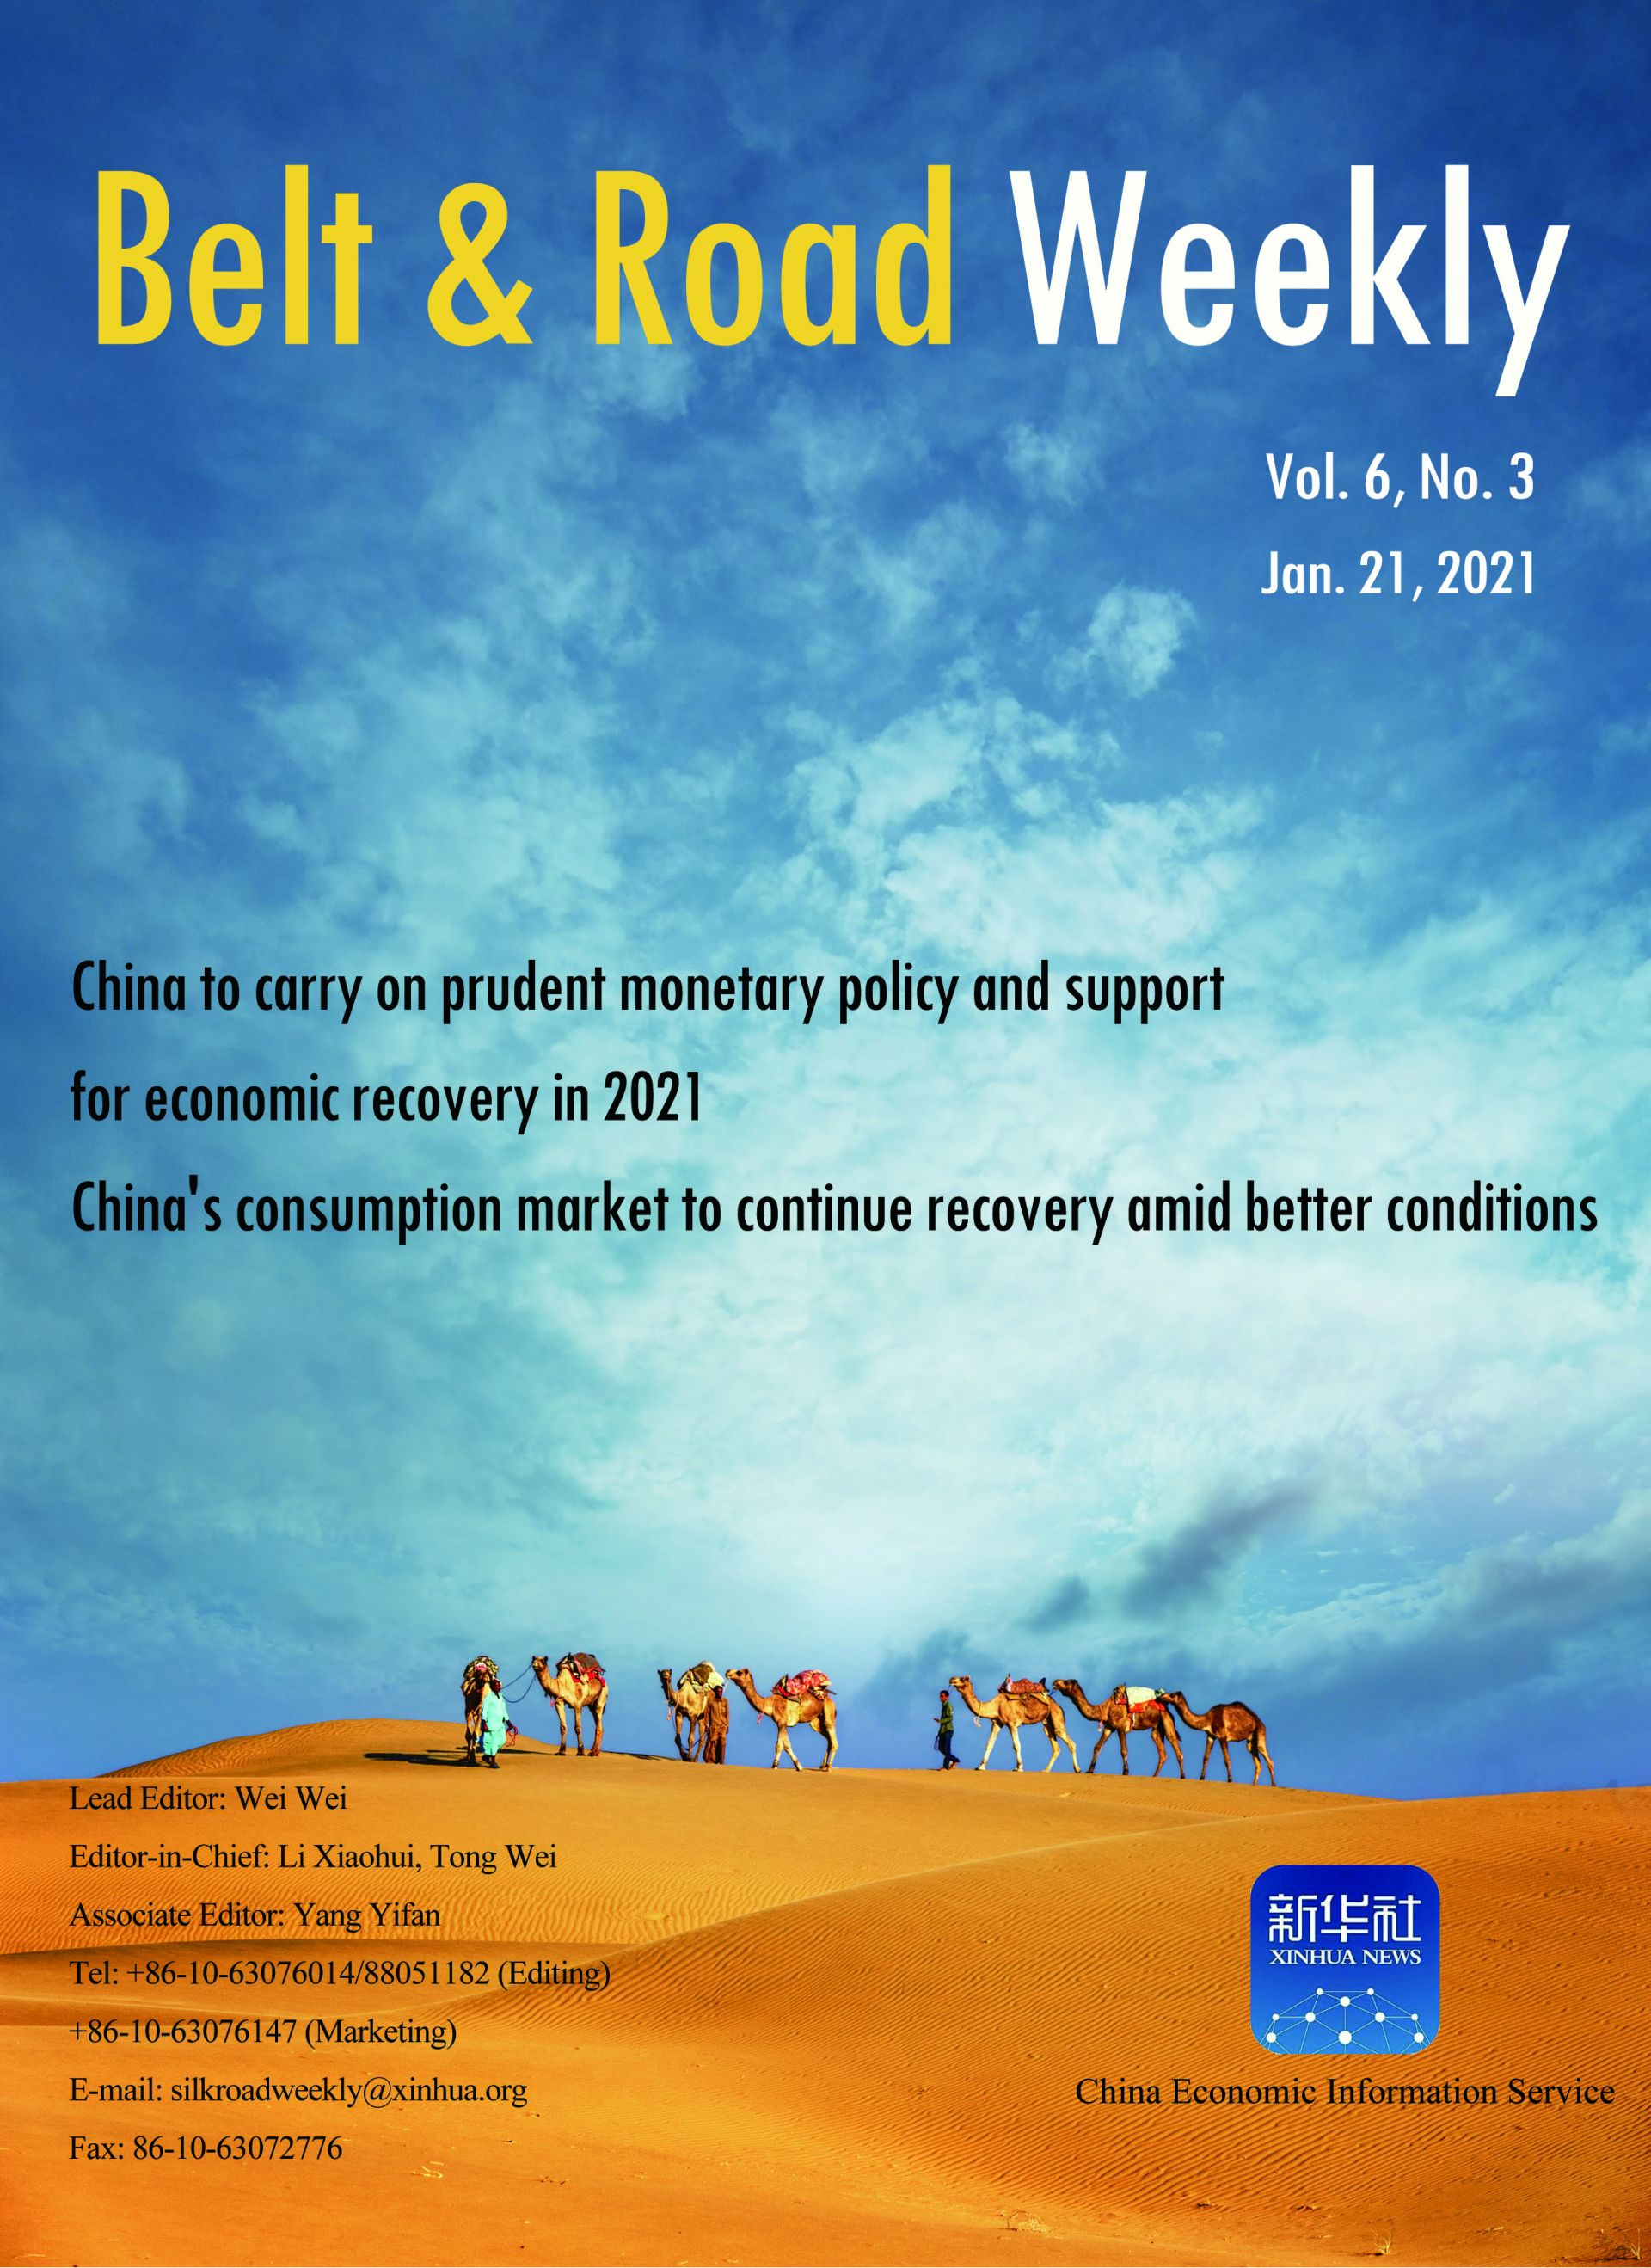 Belt & Road Weekly Vol. 6 No. 3